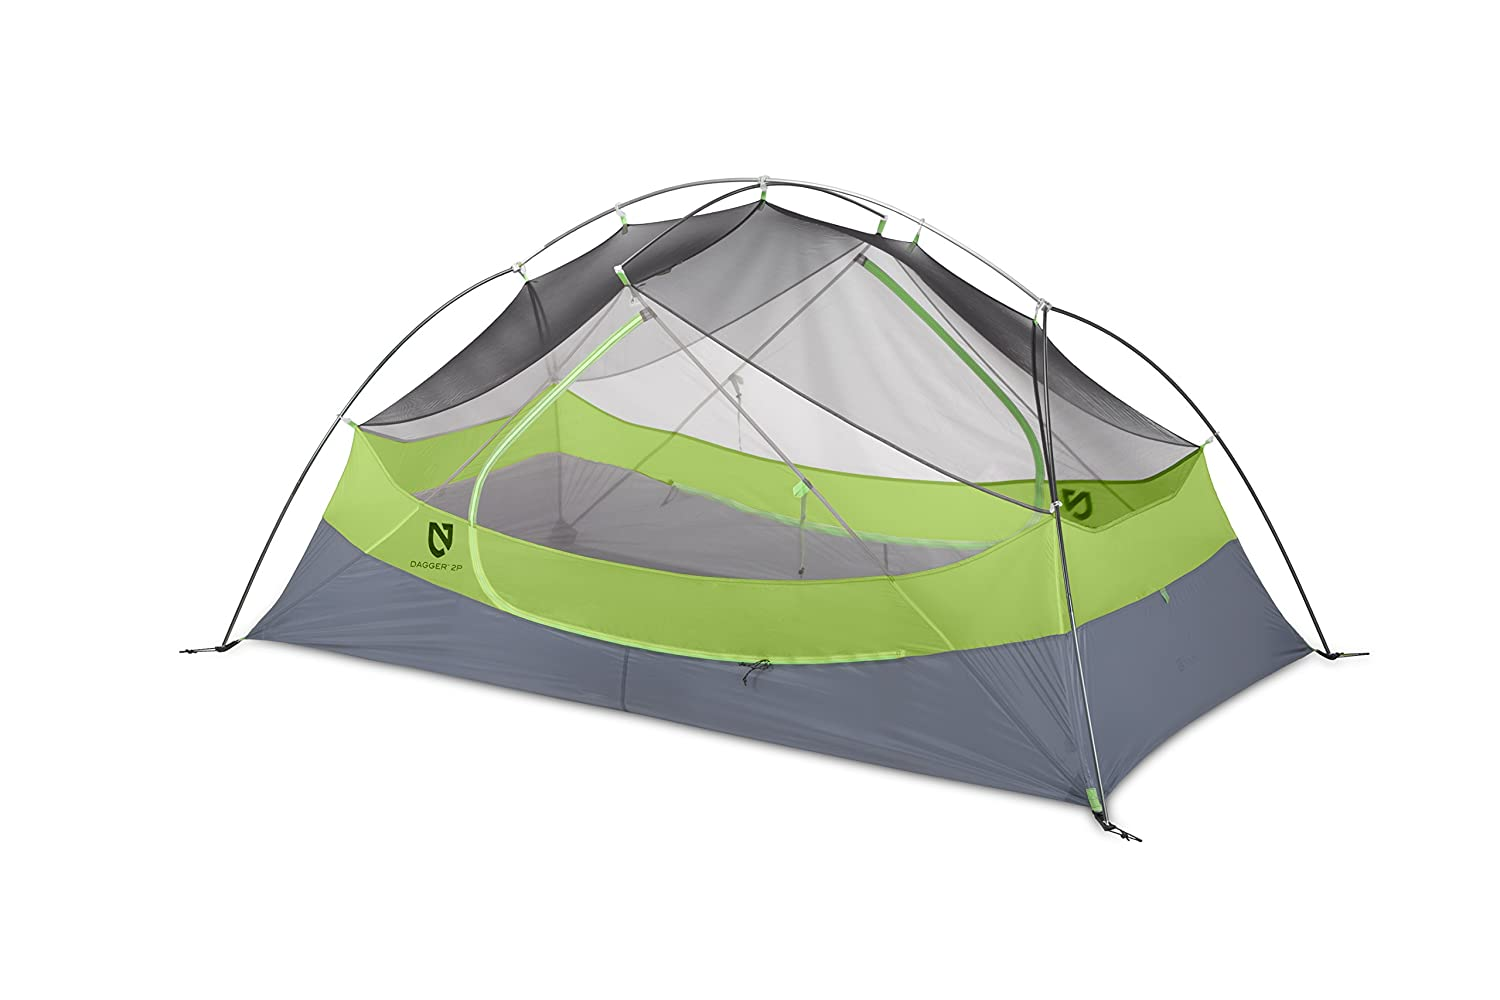 Ultralight Backpacking Tent with Roomy Interior for Cozy Camping.